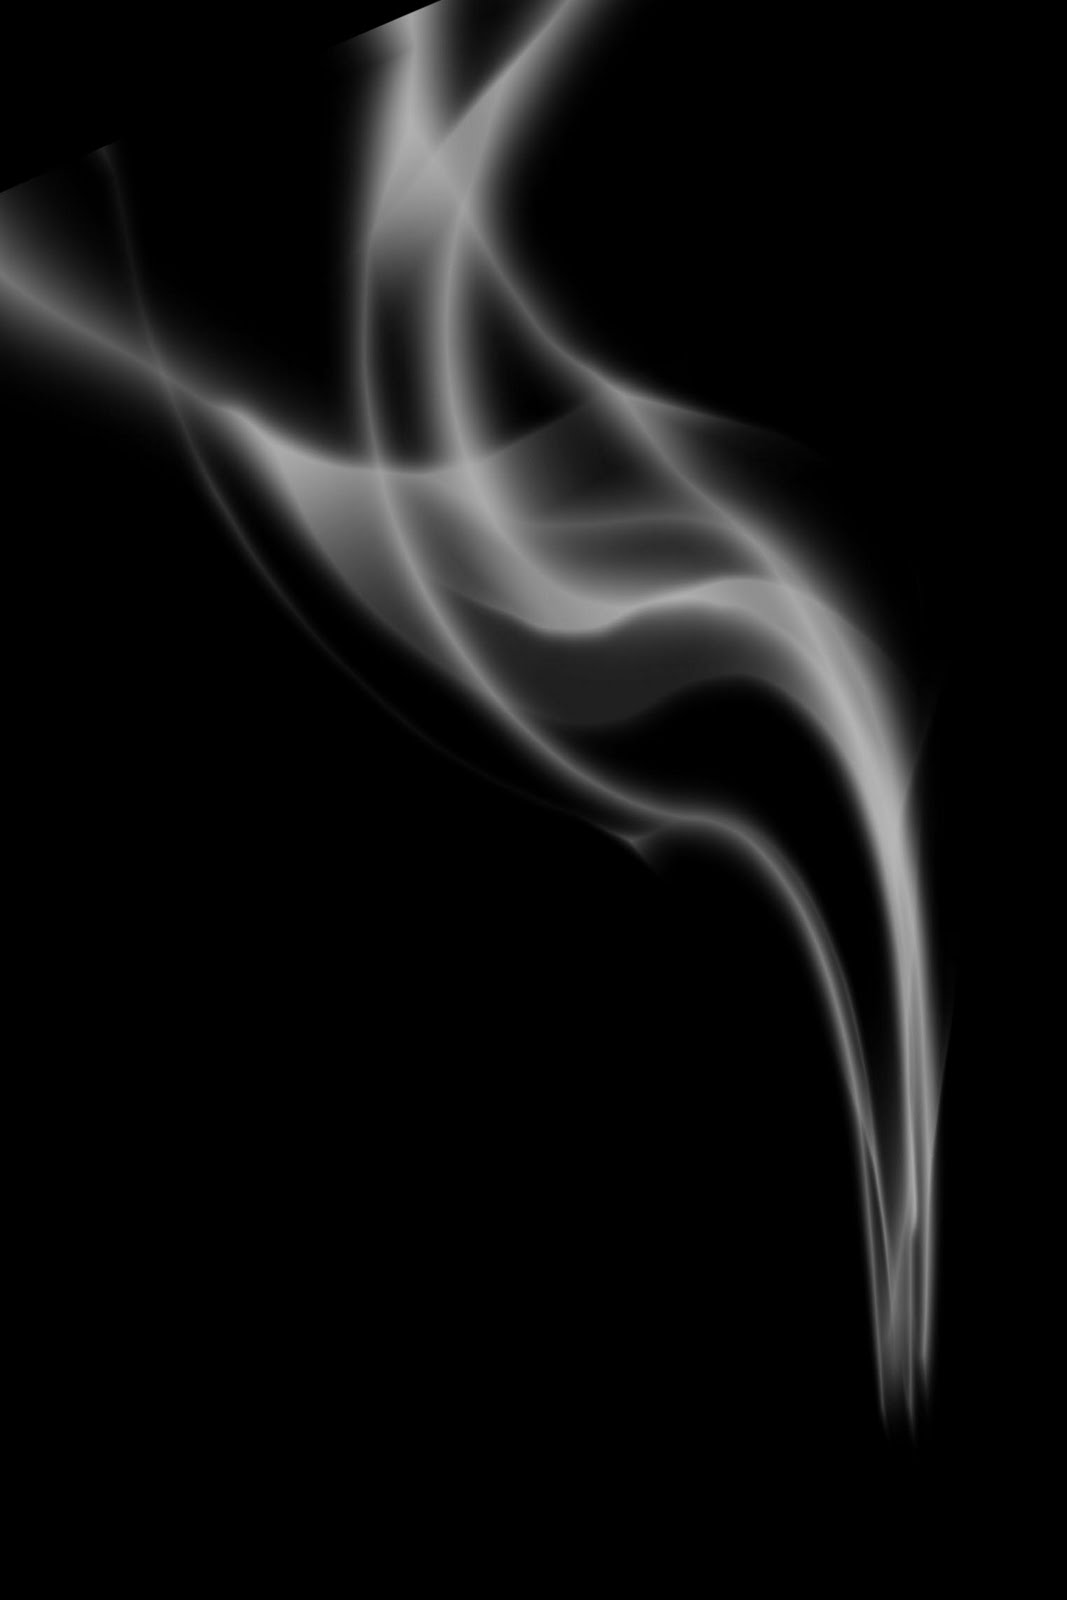 Candle or Cigarette Smoke Effect | Thoughts and Ideas on Photoshop ... for Candle Smoke Photography  173lyp